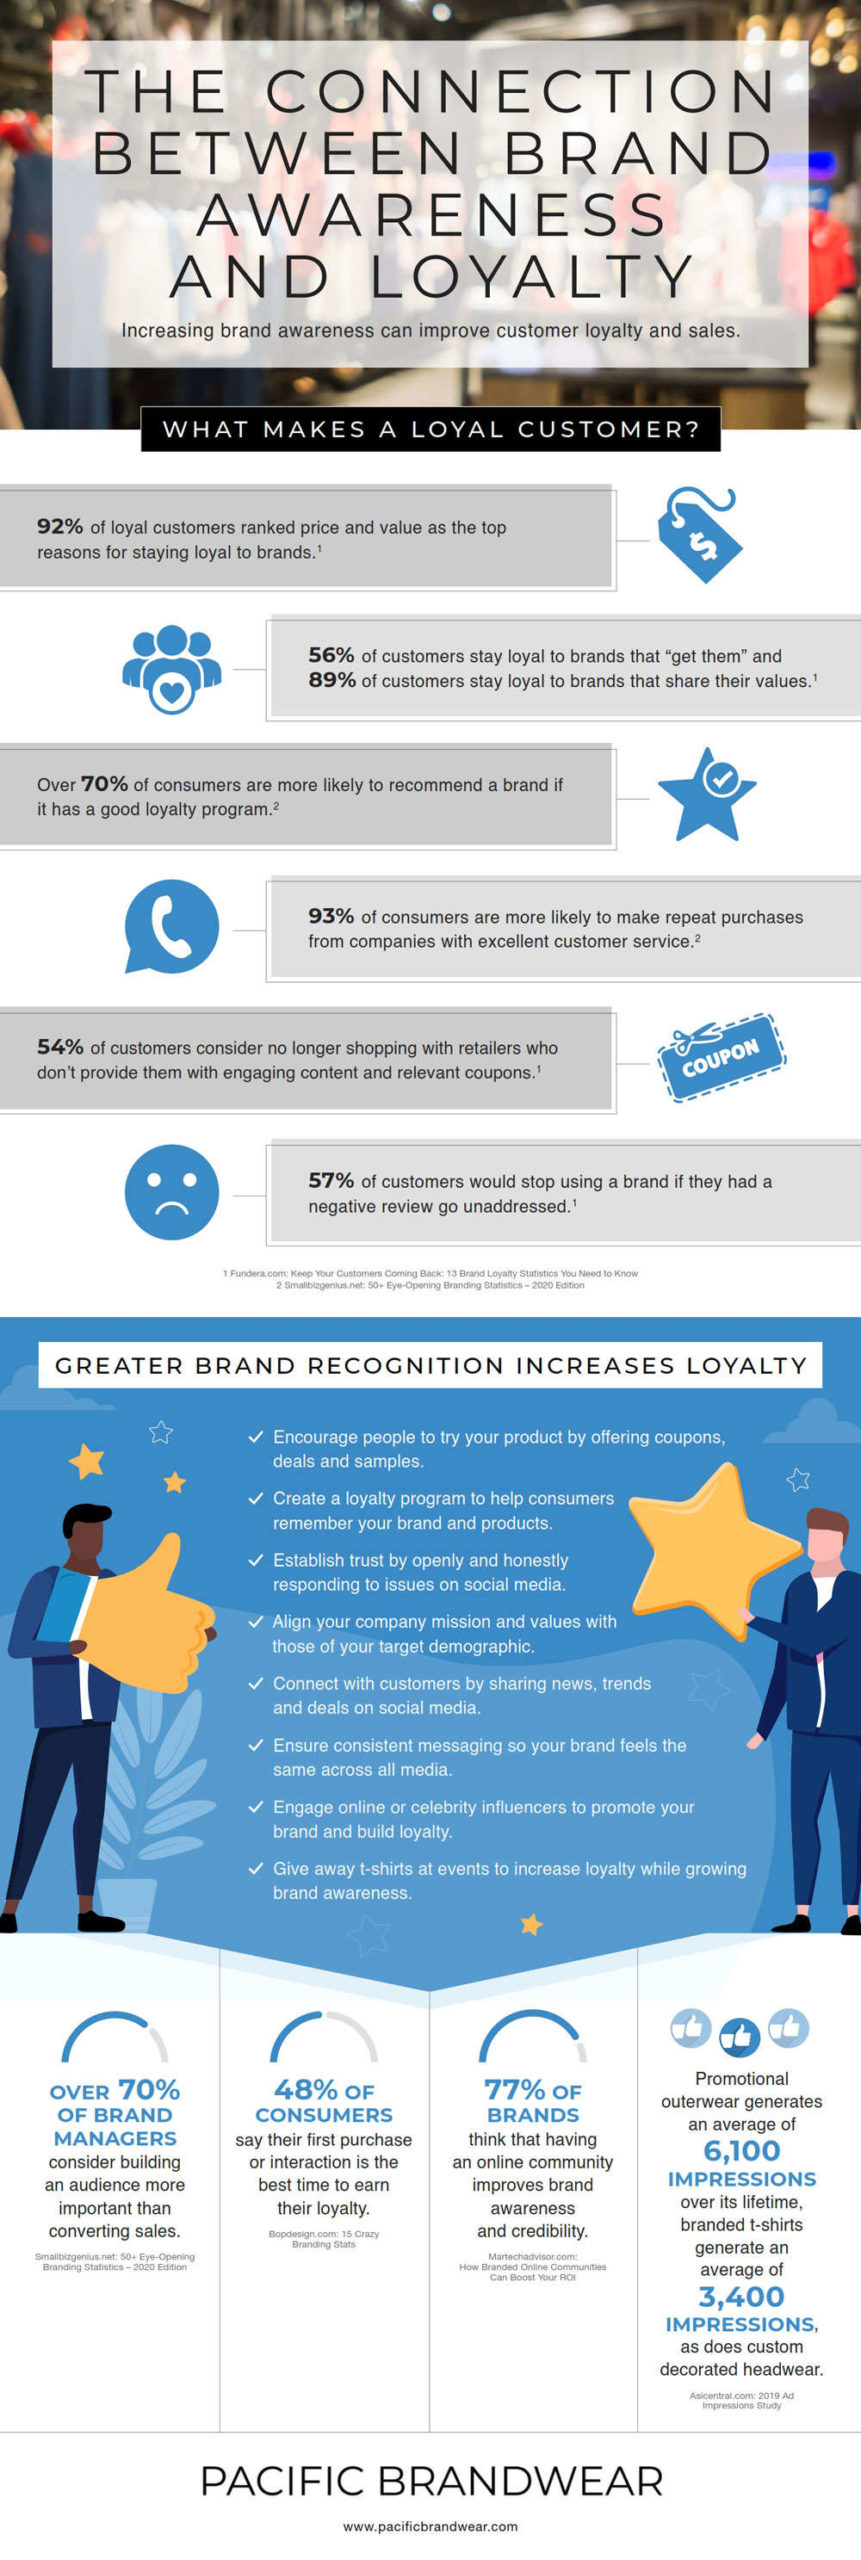 The Connection Between Brand Awareness And Loyalty